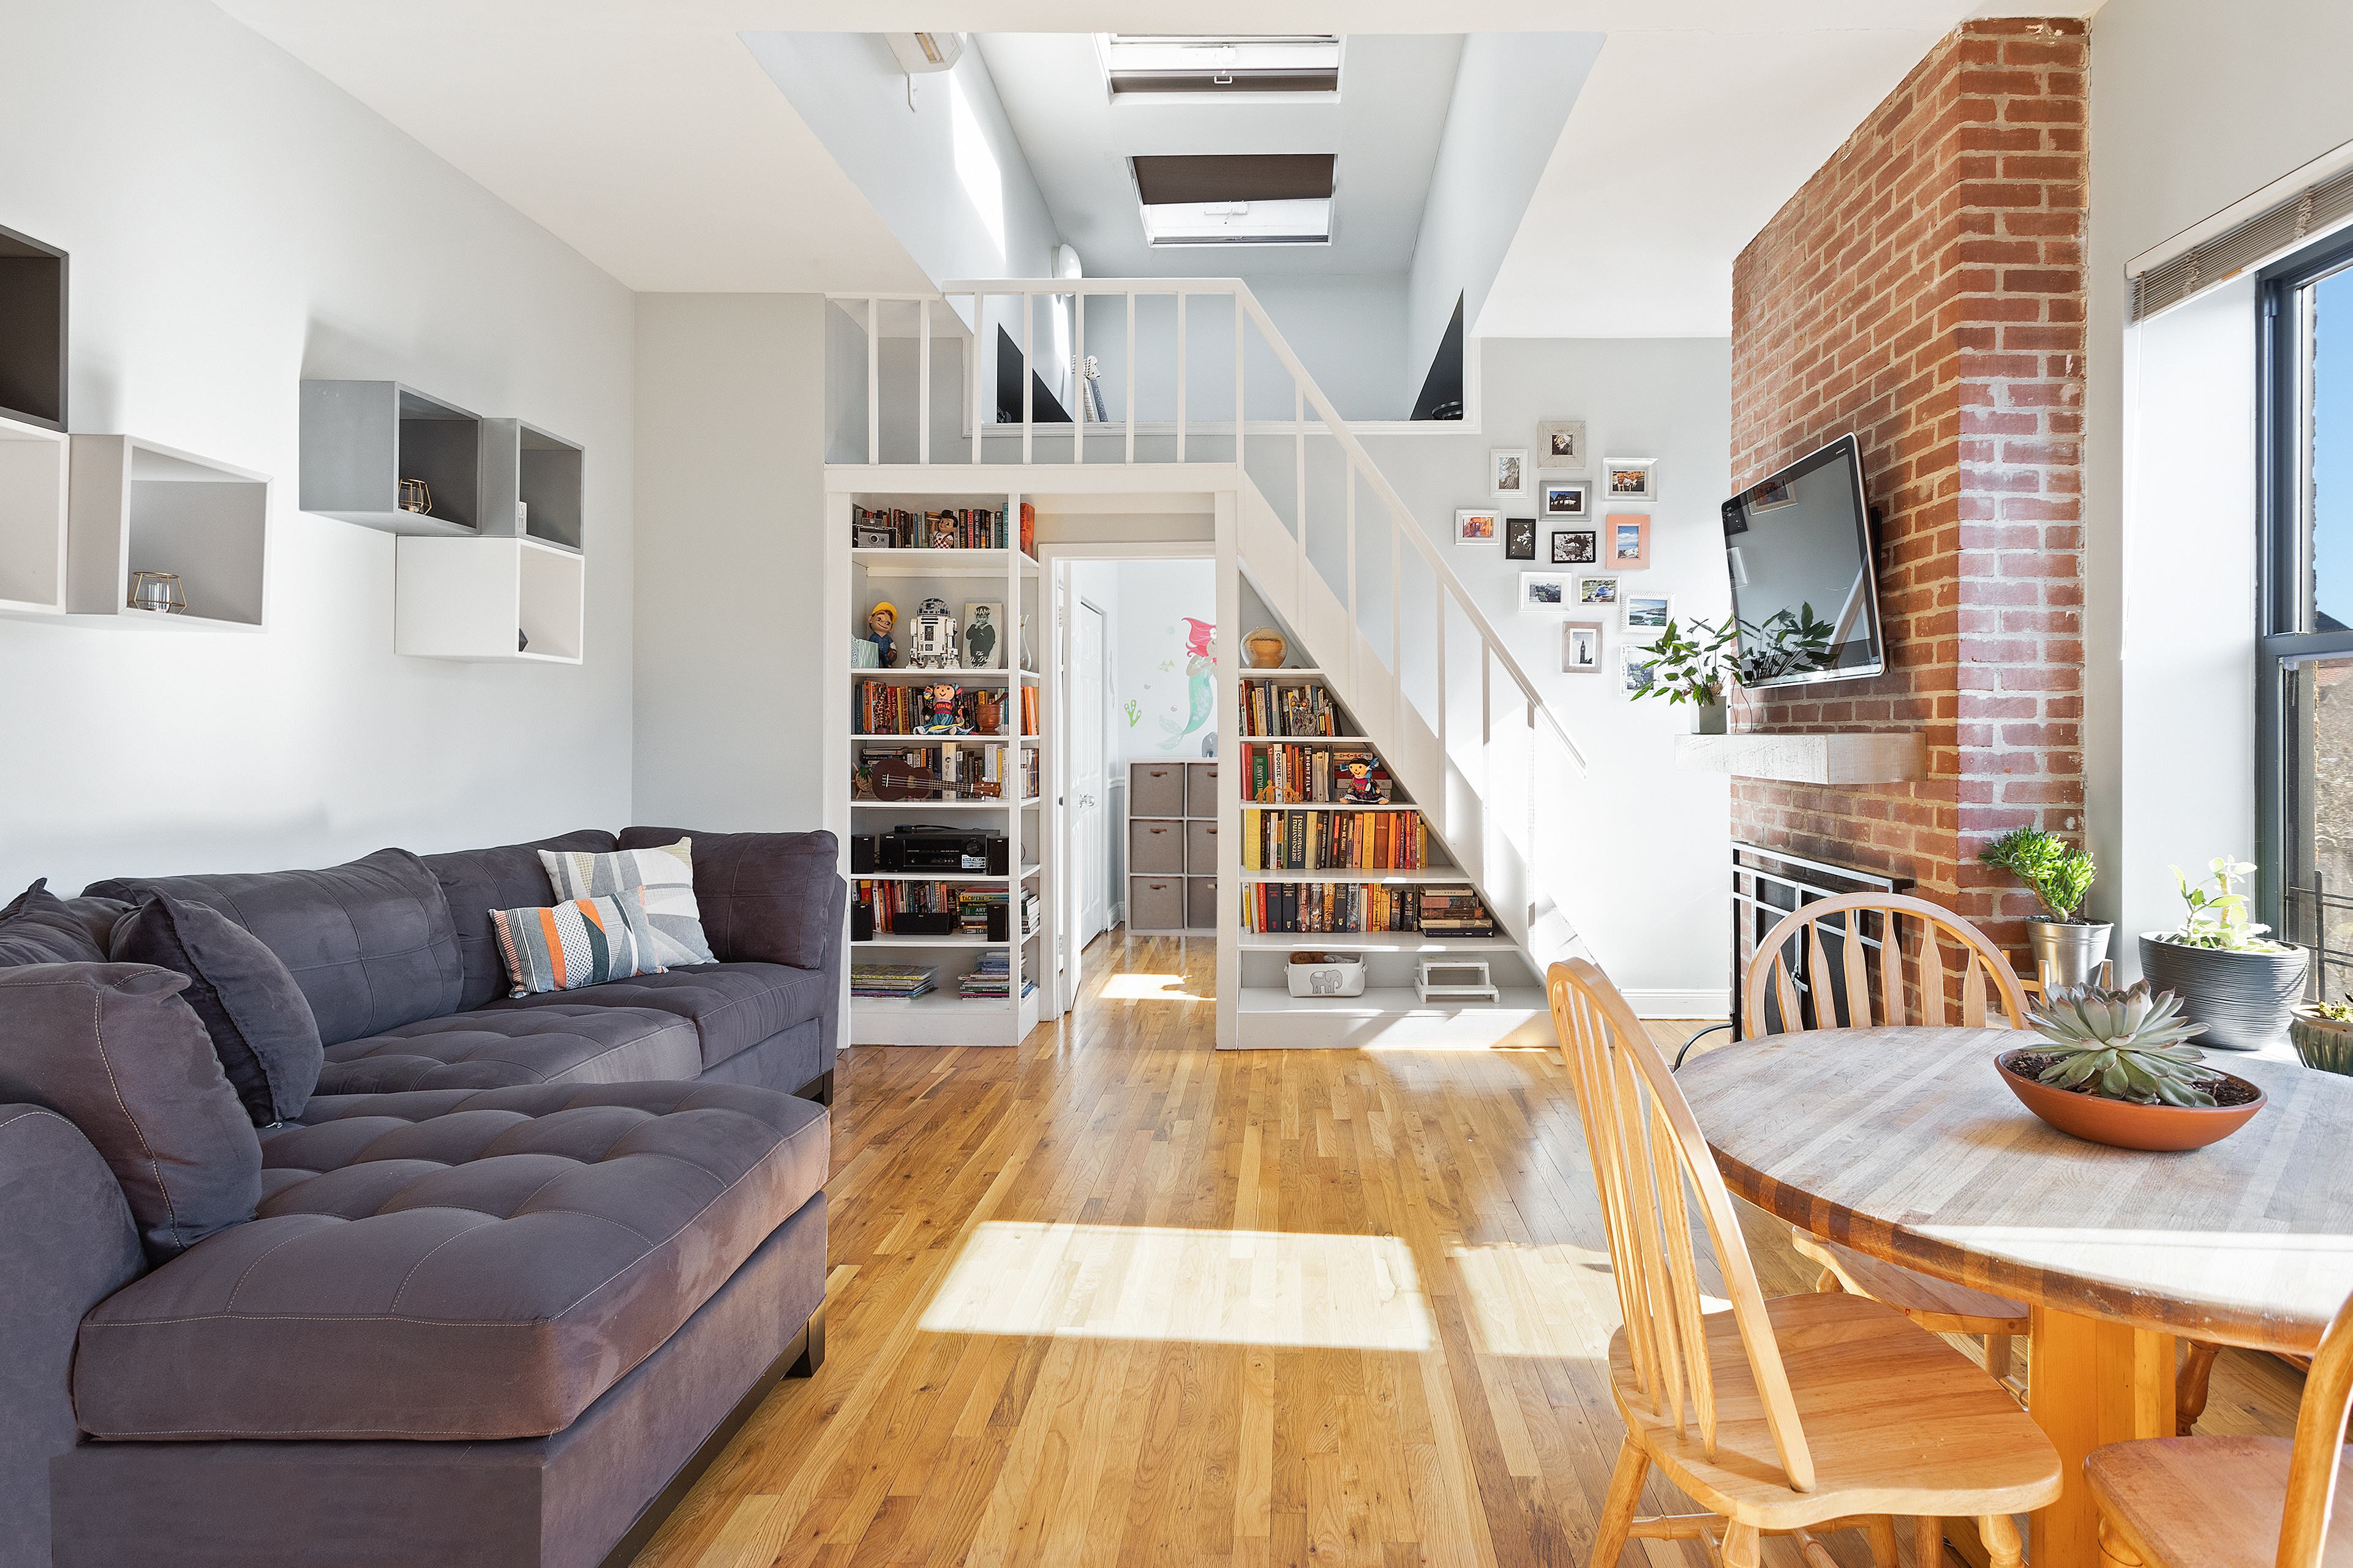 The living room has south-facing windows, a working fireplace surrounded by bricks, and a skylight.